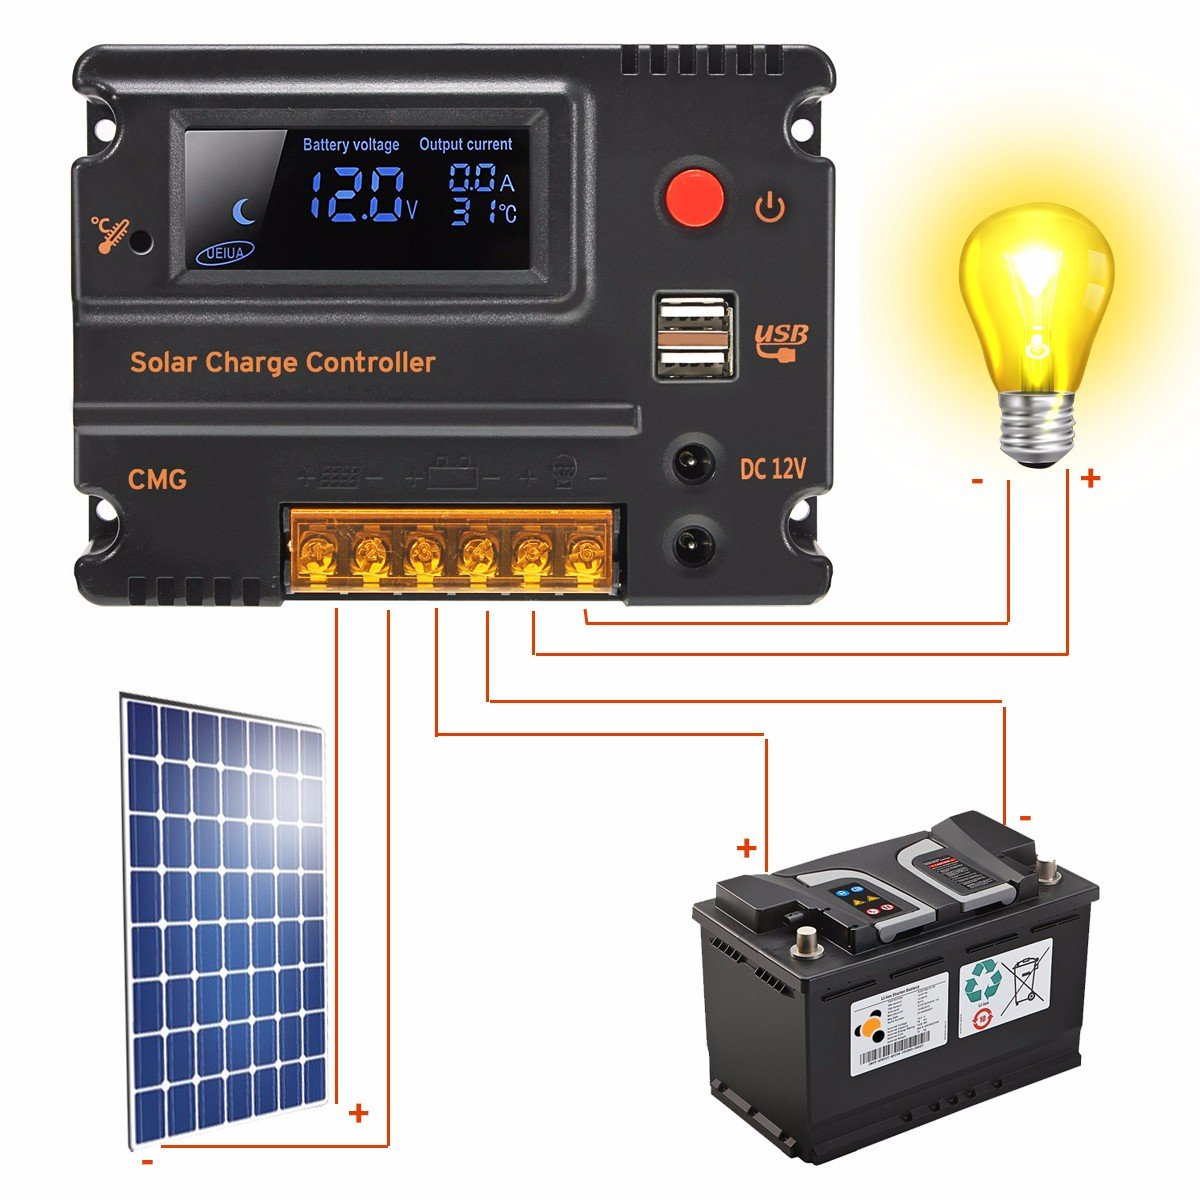 Mohoo 20a 12v 24v Solar Charge Controller Auto Switch Pwm 10a 12v24v Automatic Art Of Circuits Lcd Intelligent Panel Battery Regulator Overload Protection